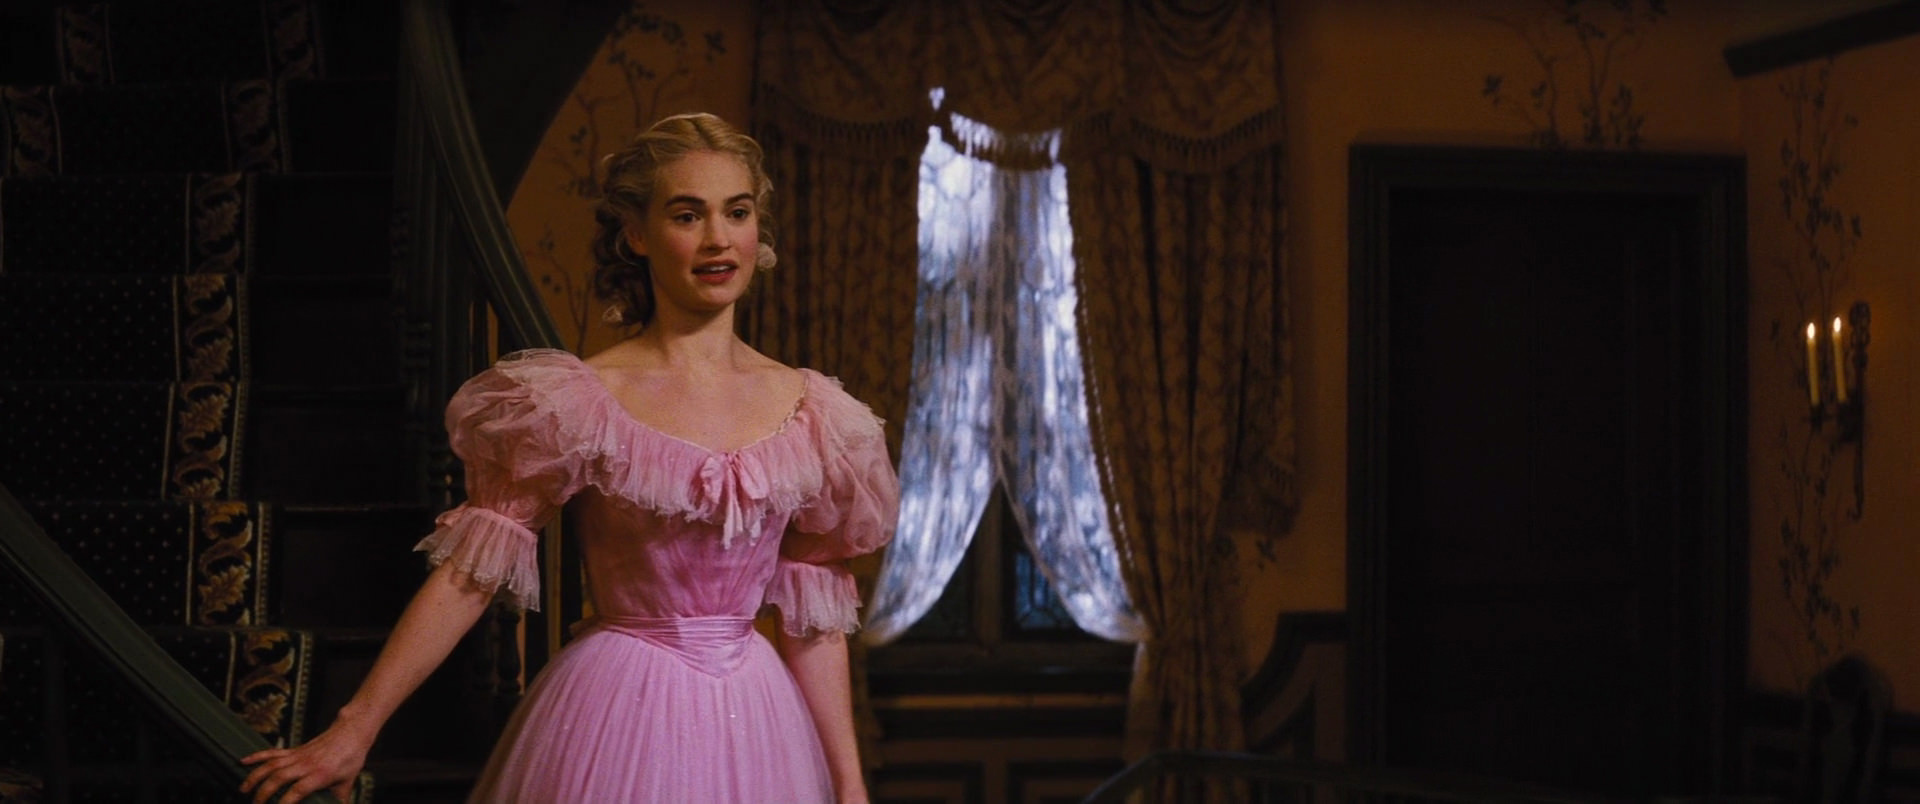 Cinderella's Dress | Disney Wiki | Fandom powered by Wikia